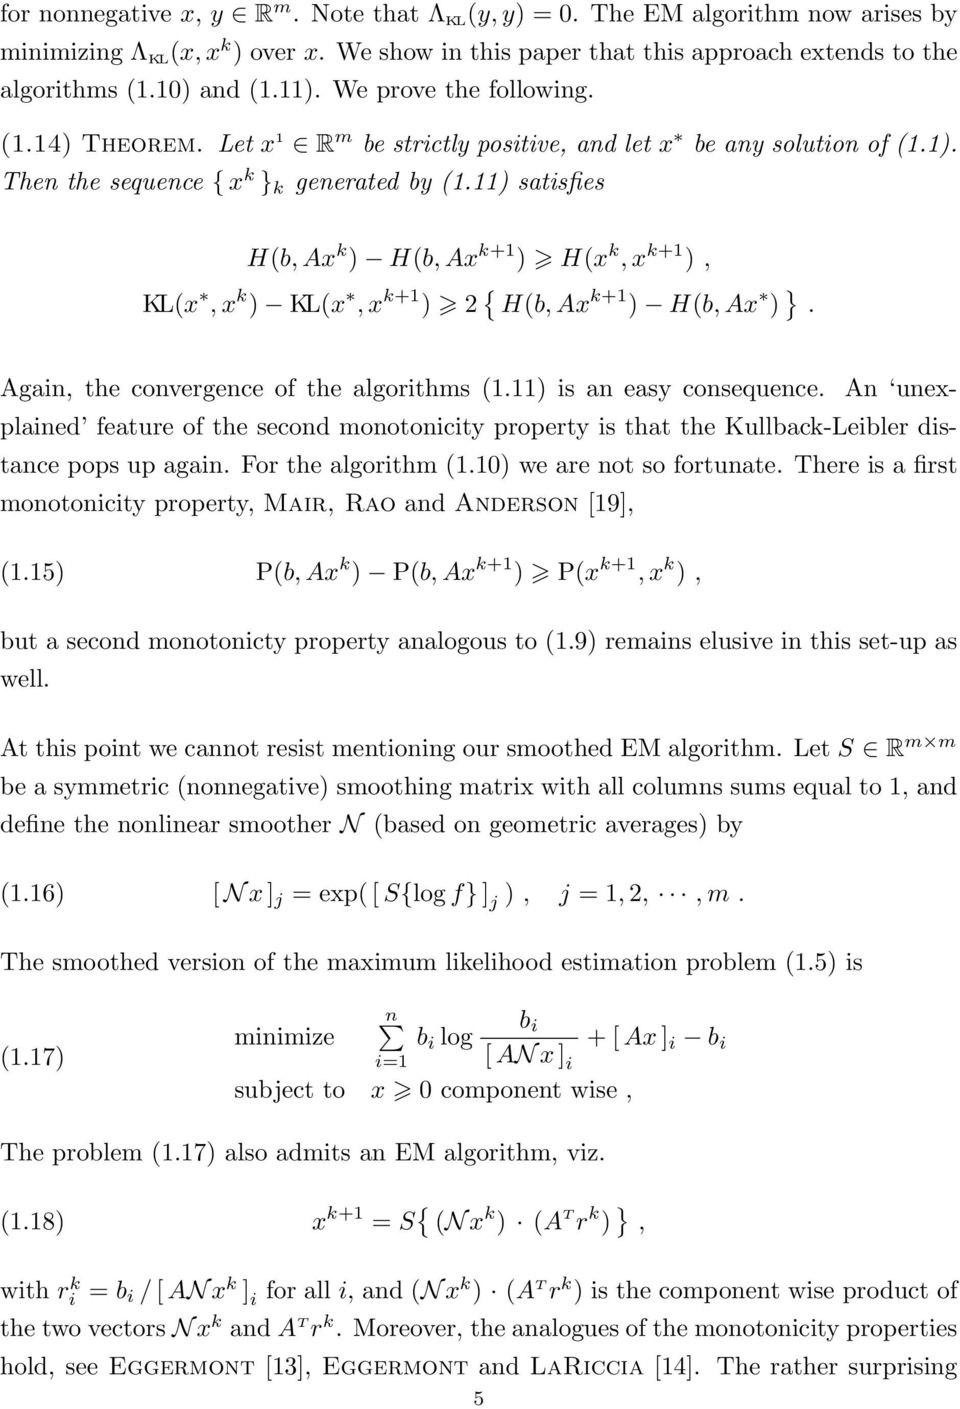 k+1 ), KL(x, x k ) KL(x, x k+1 ) 2 { H(b, Ax k+1 ) H(b, Ax ) } Again, the convergence of the algorithms (111) is an easy consequence An unexplained feature of the second monotonicity property is that